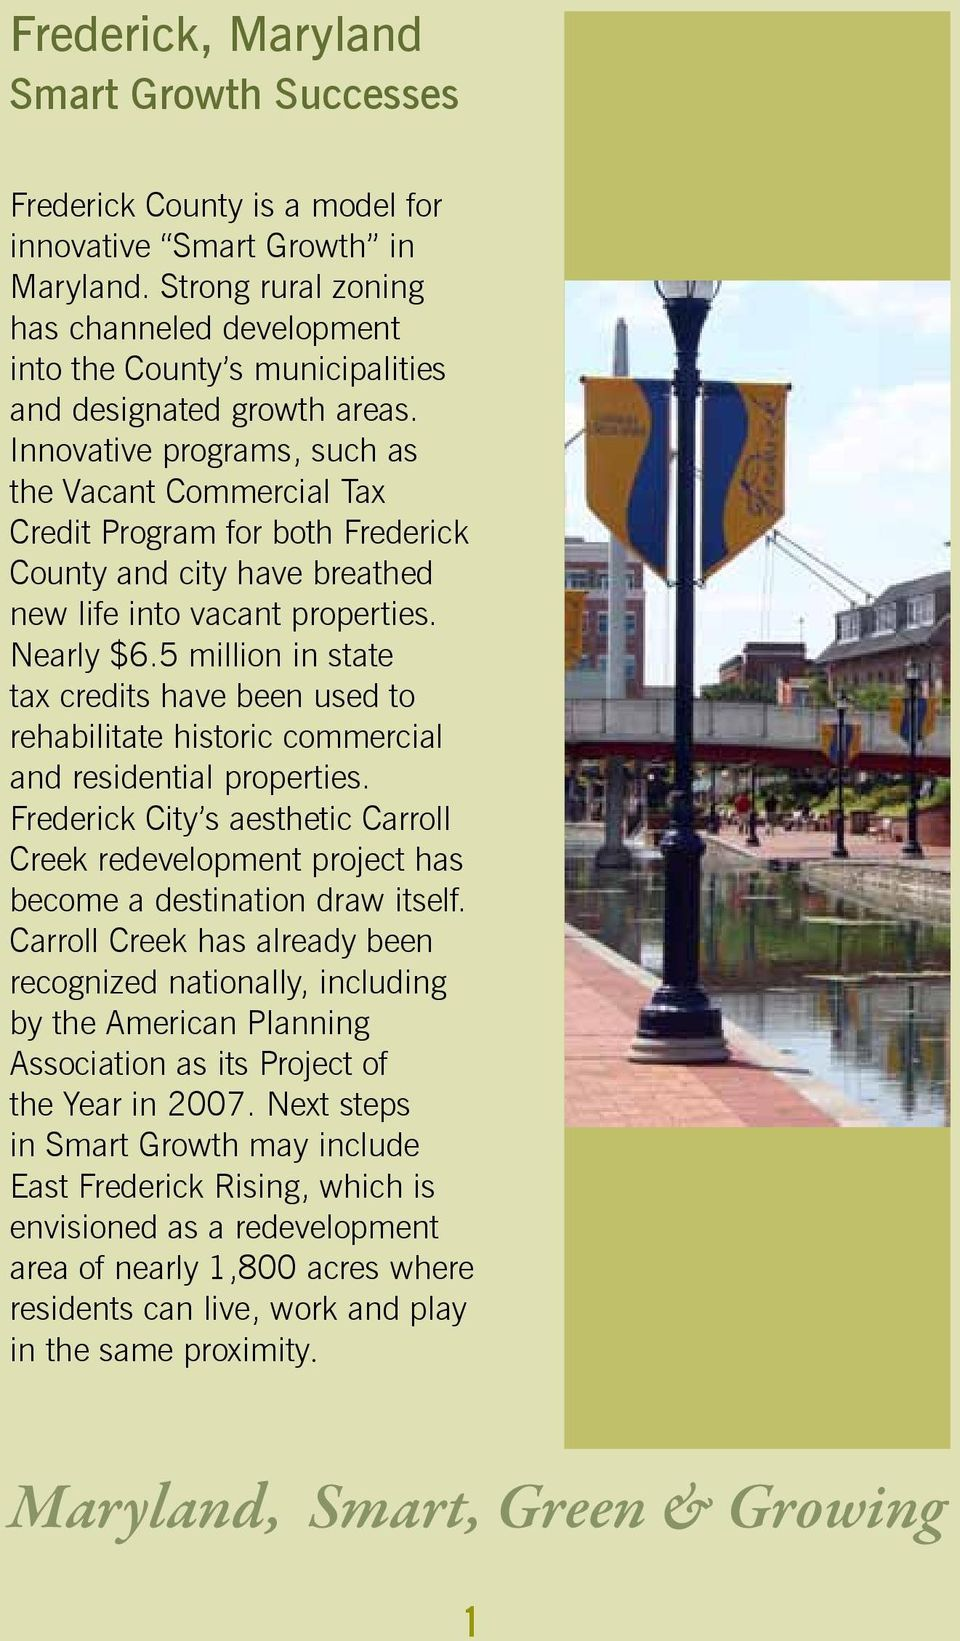 Innovative programs, such as the Vacant Commercial Tax Credit Program for both Frederick County and city have breathed new life into vacant properties. Nearly $6.